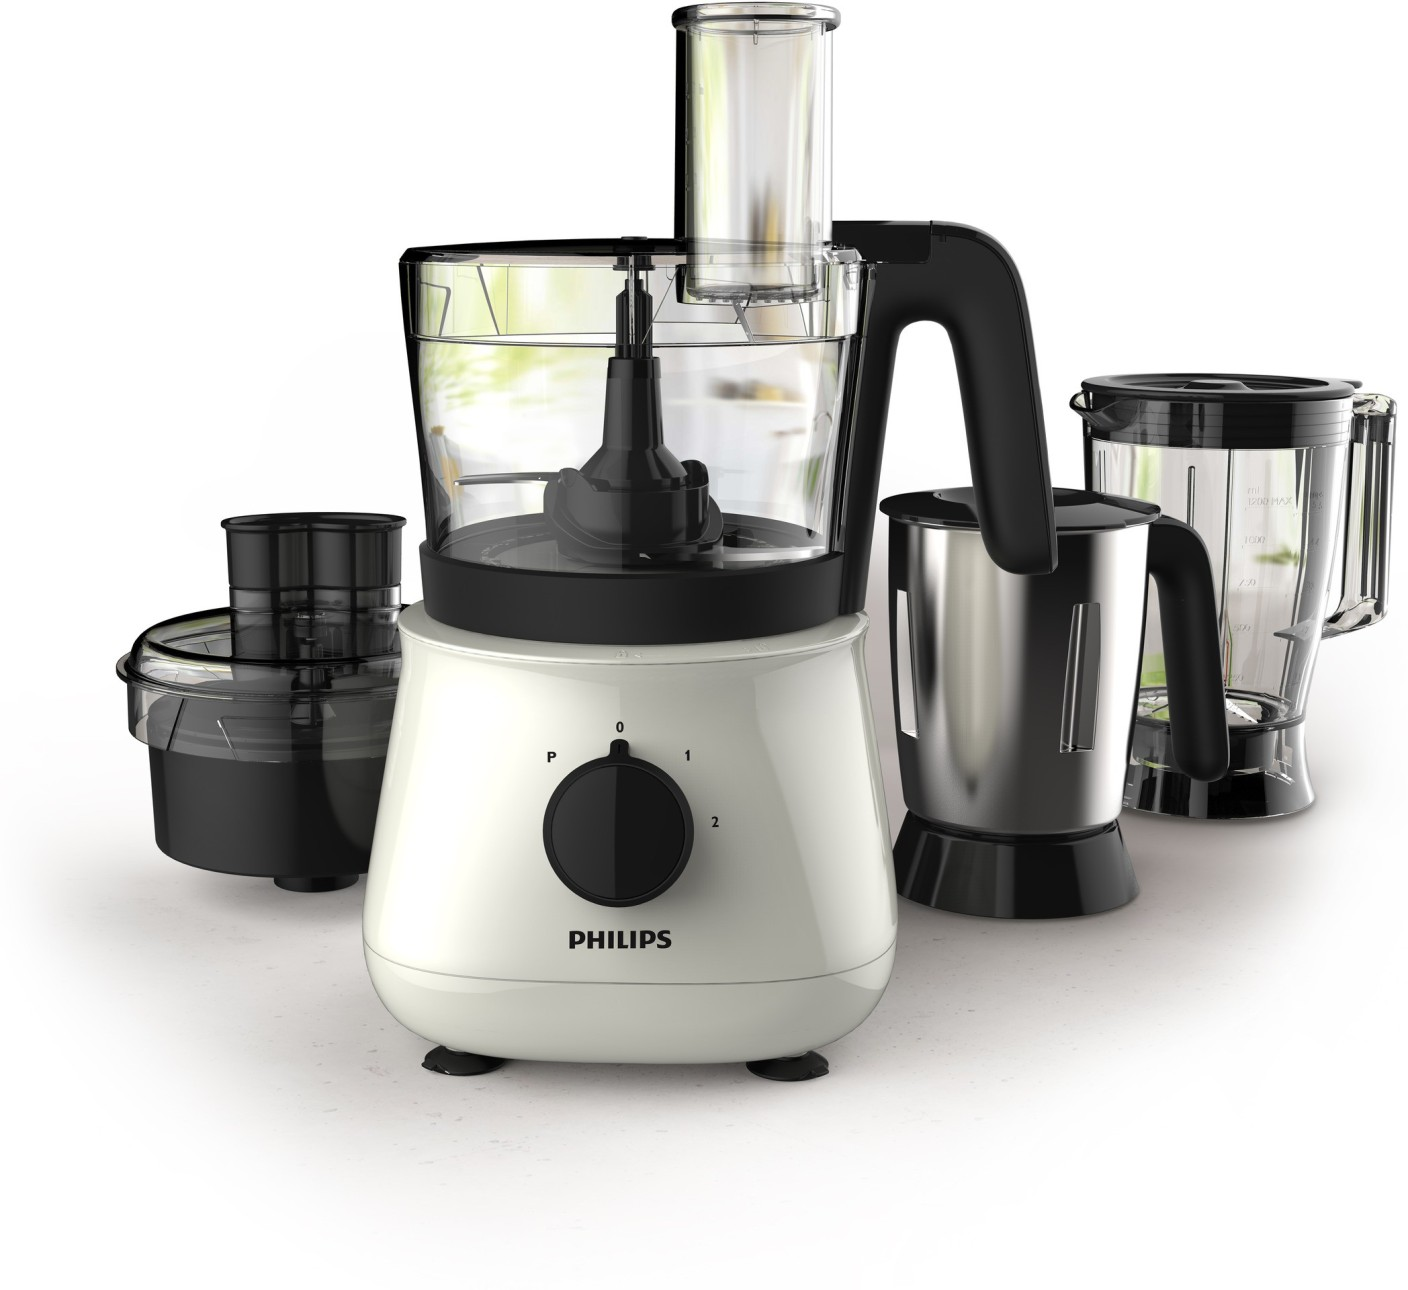 Philips Avance Food Processor Price In India